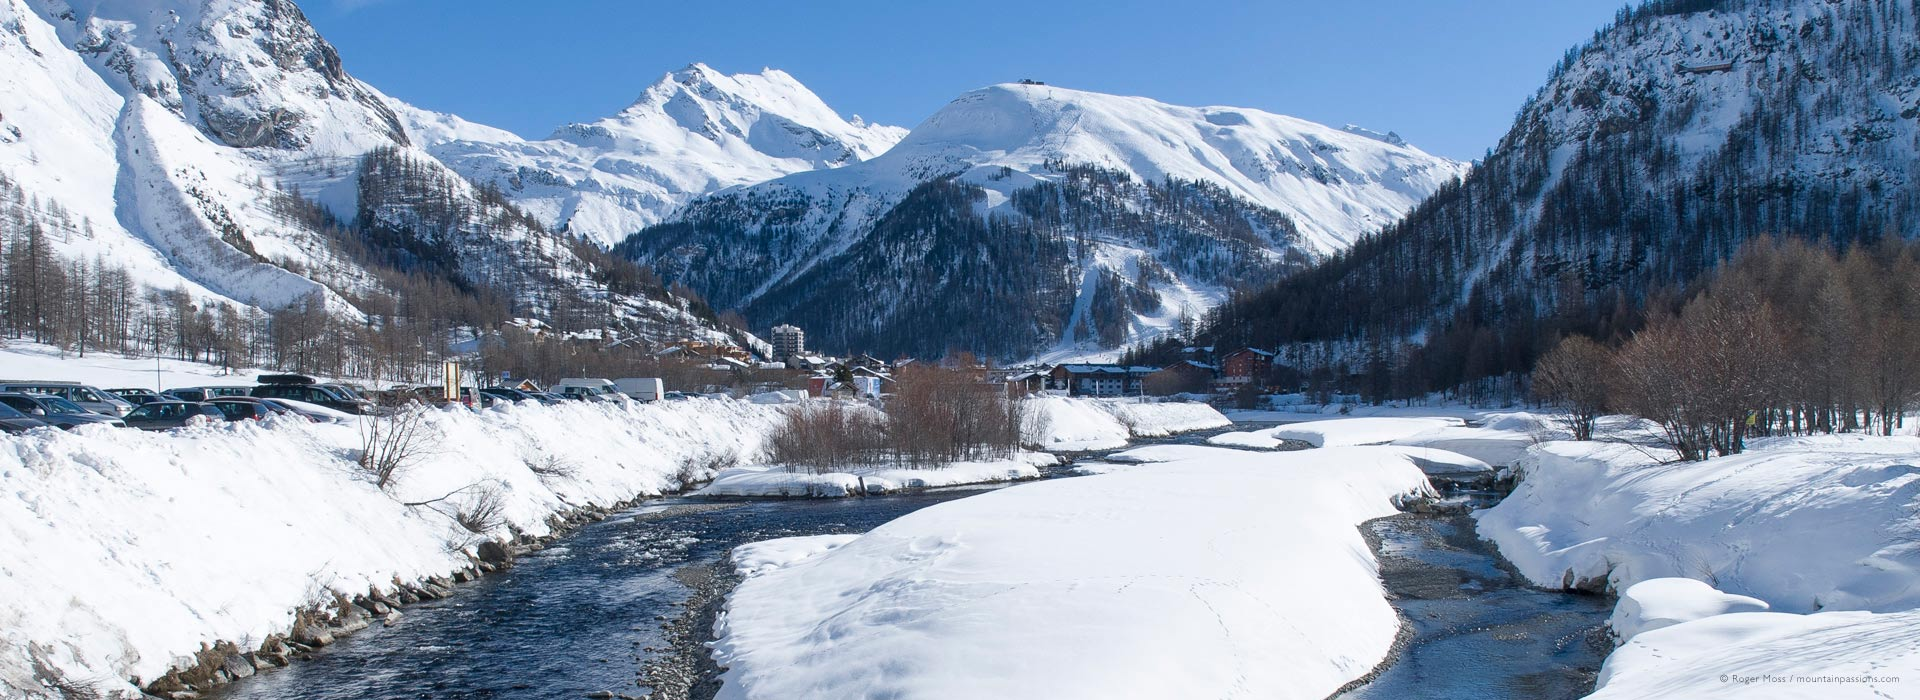 Wide view of river and snow-covered valley setting of Val d'Isere ski village.